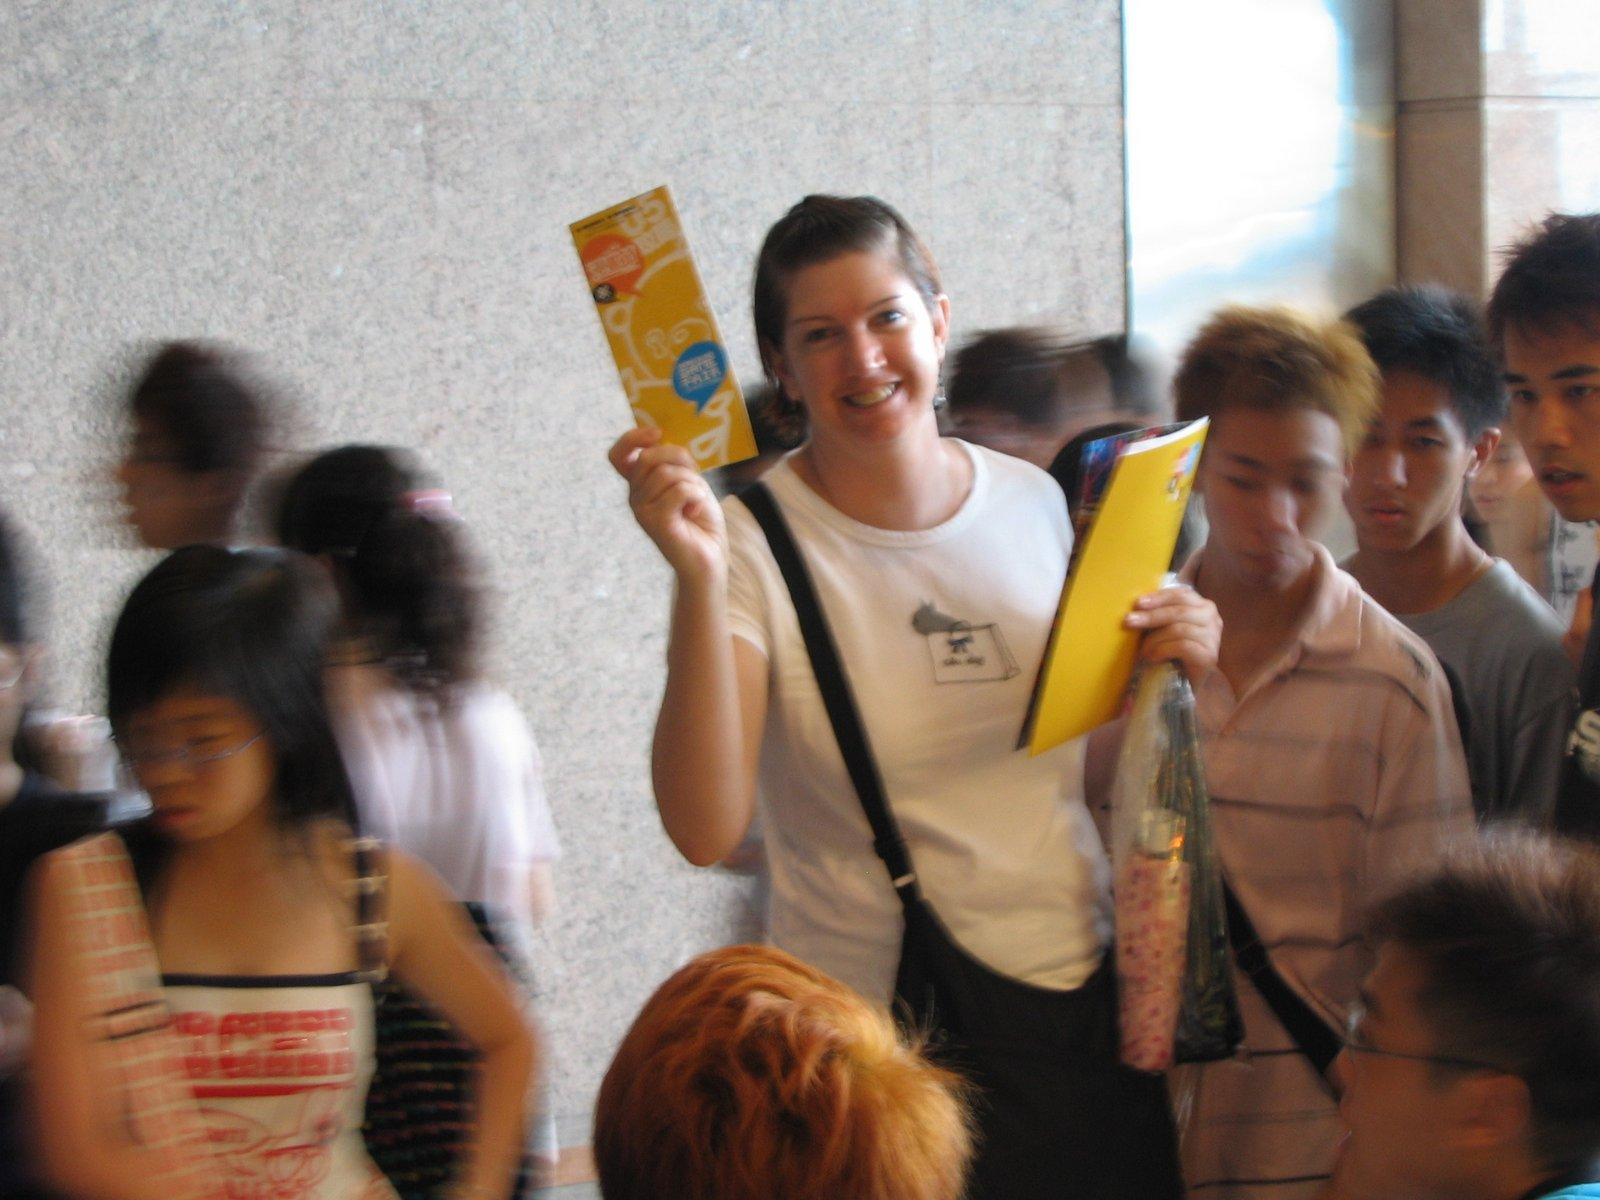 Wendy at the Comic Convention at the Hong Kong Convention Center, 2005.